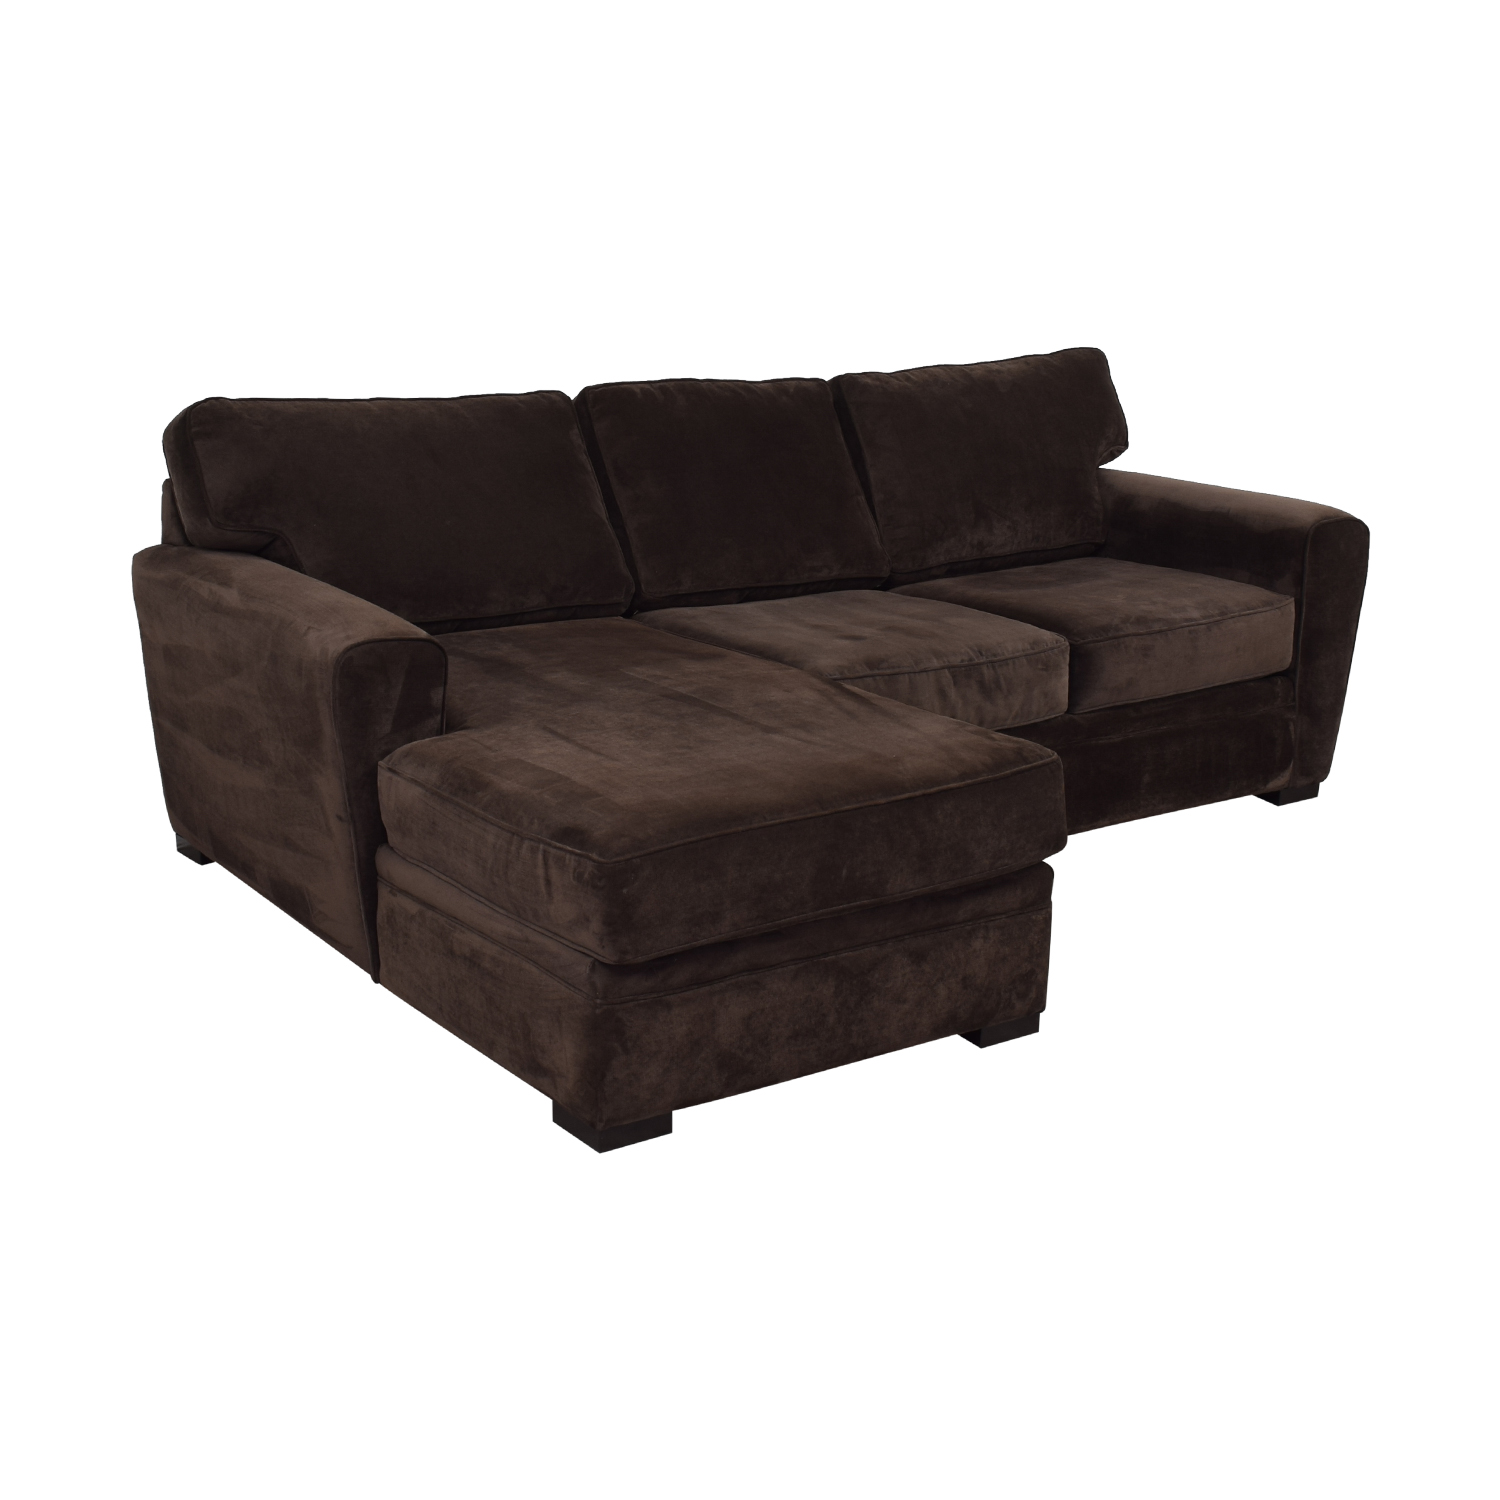 Raymour & Flanigan Artemis II Brown Microfiber Chaise Sectional / Sofas